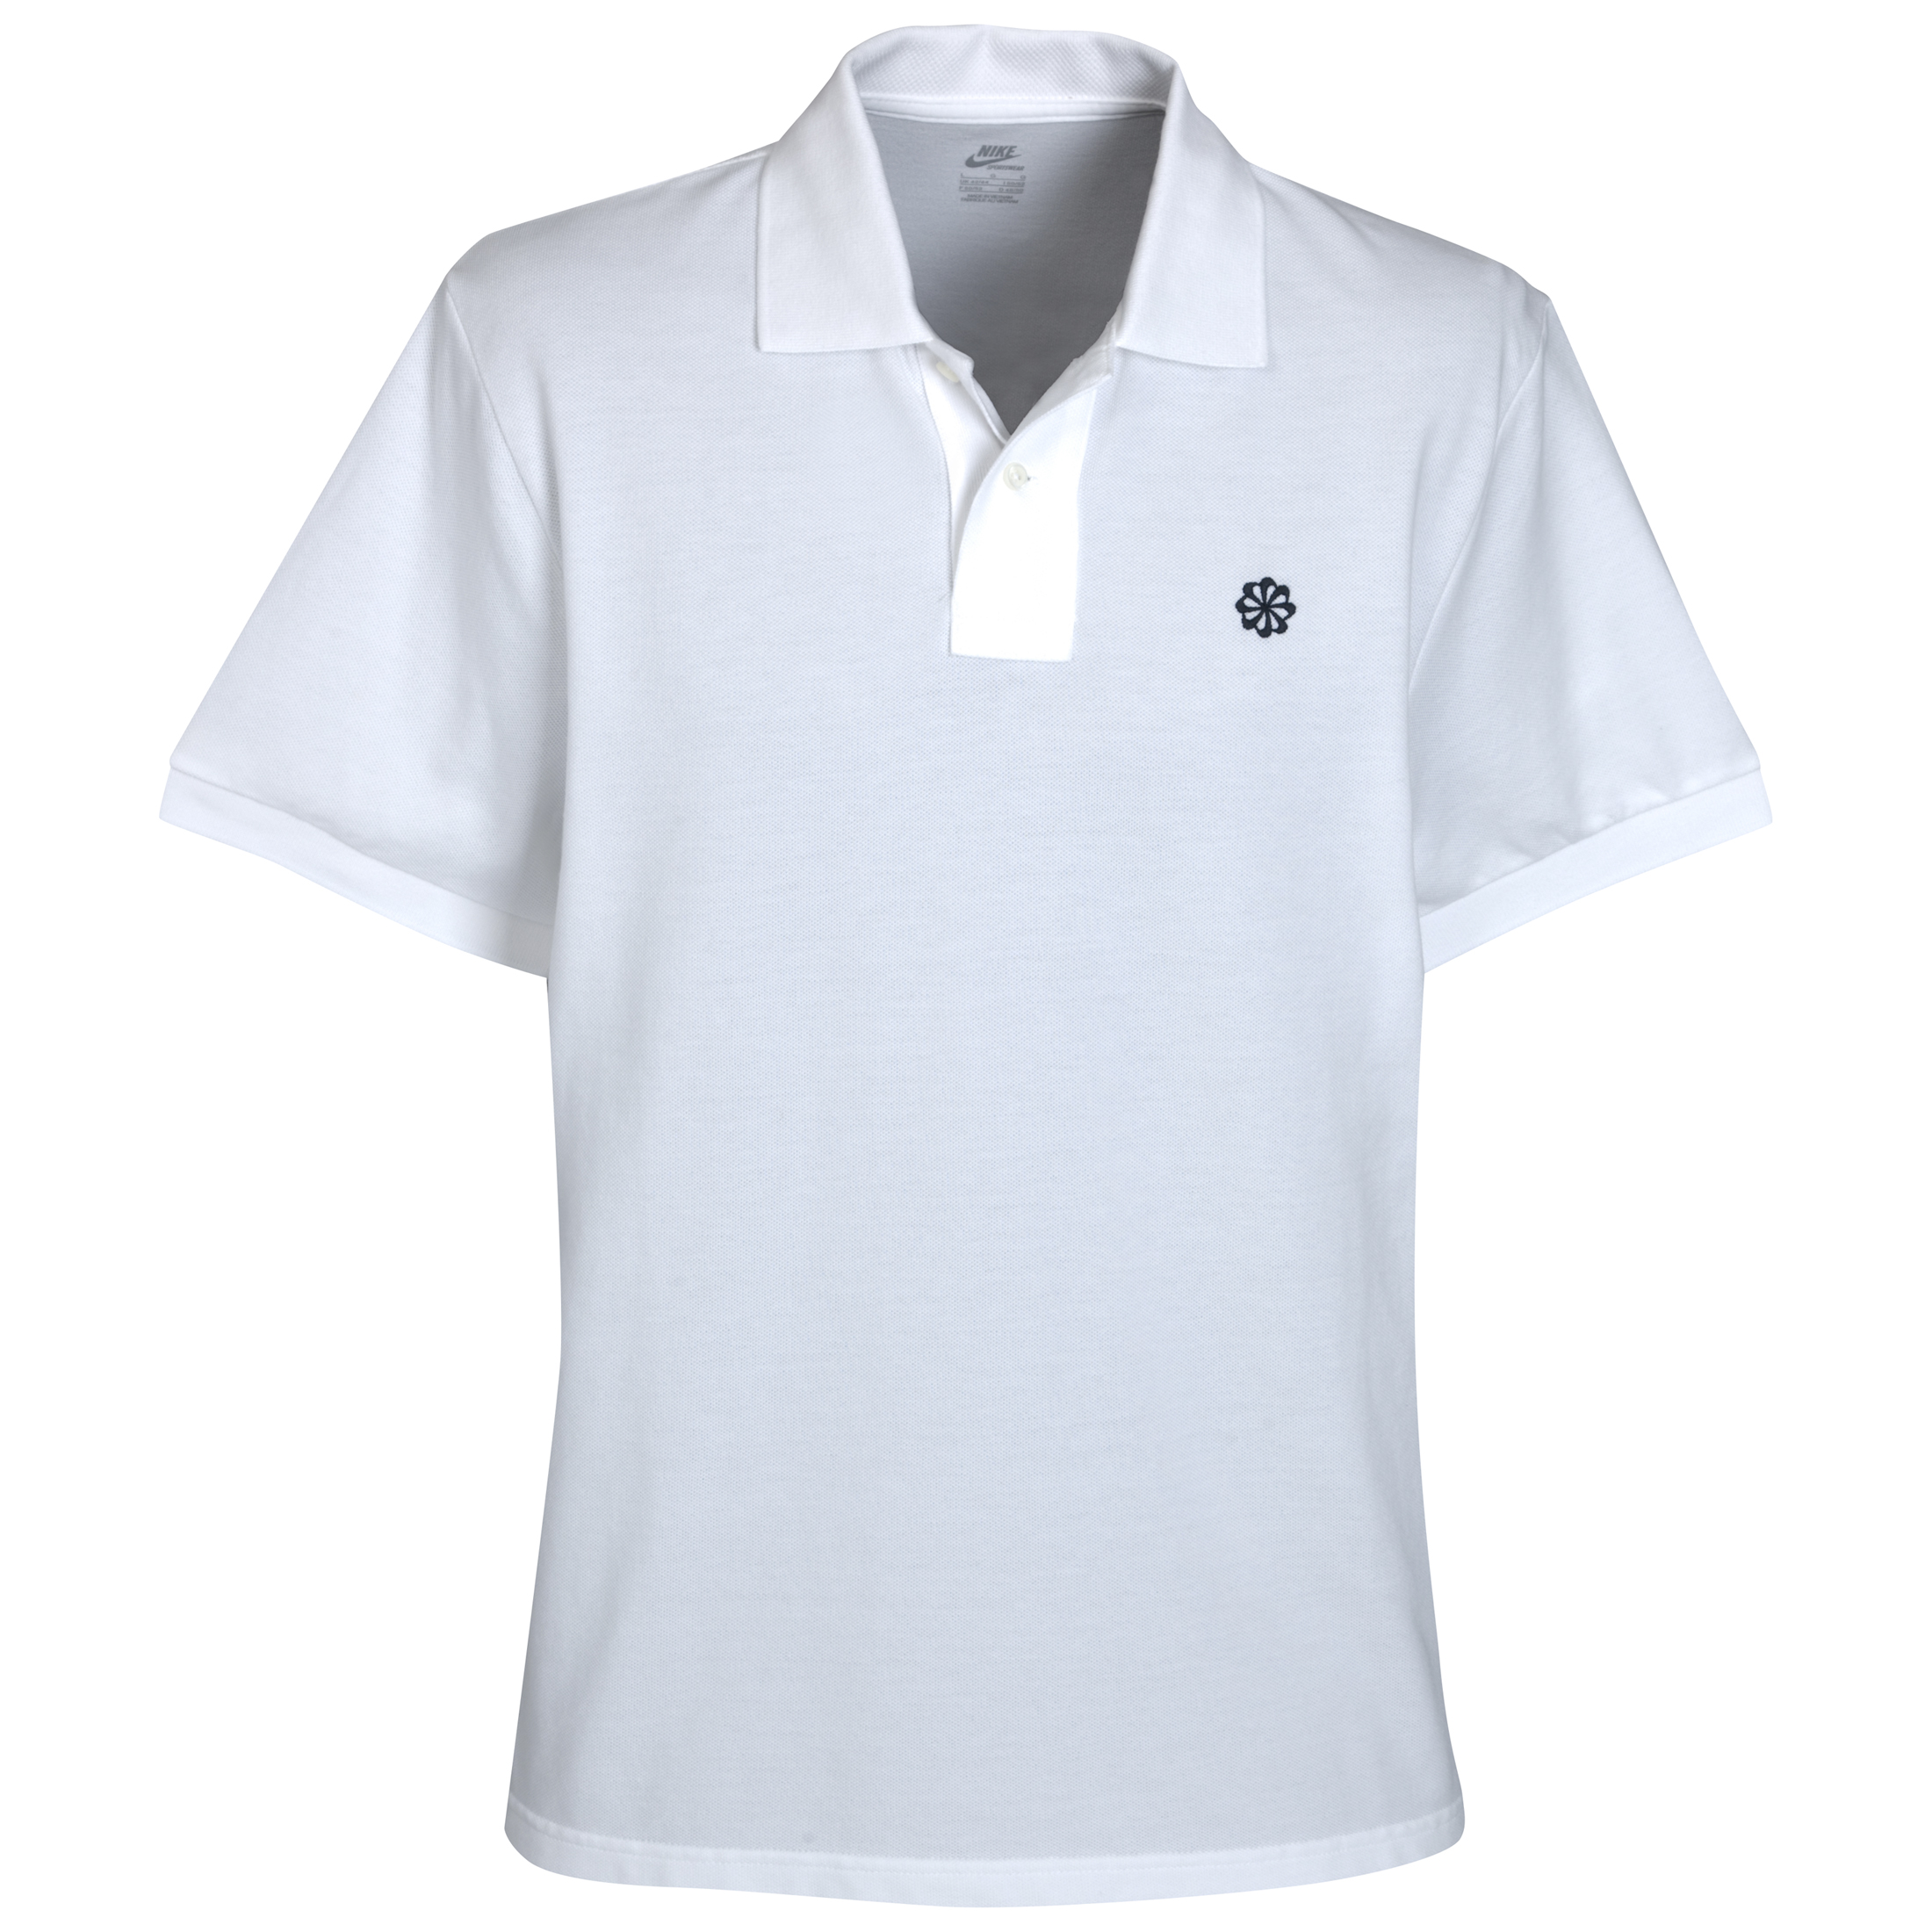 Nike Grand Slam Pique Polo Shirt - White/Dark Obsidian